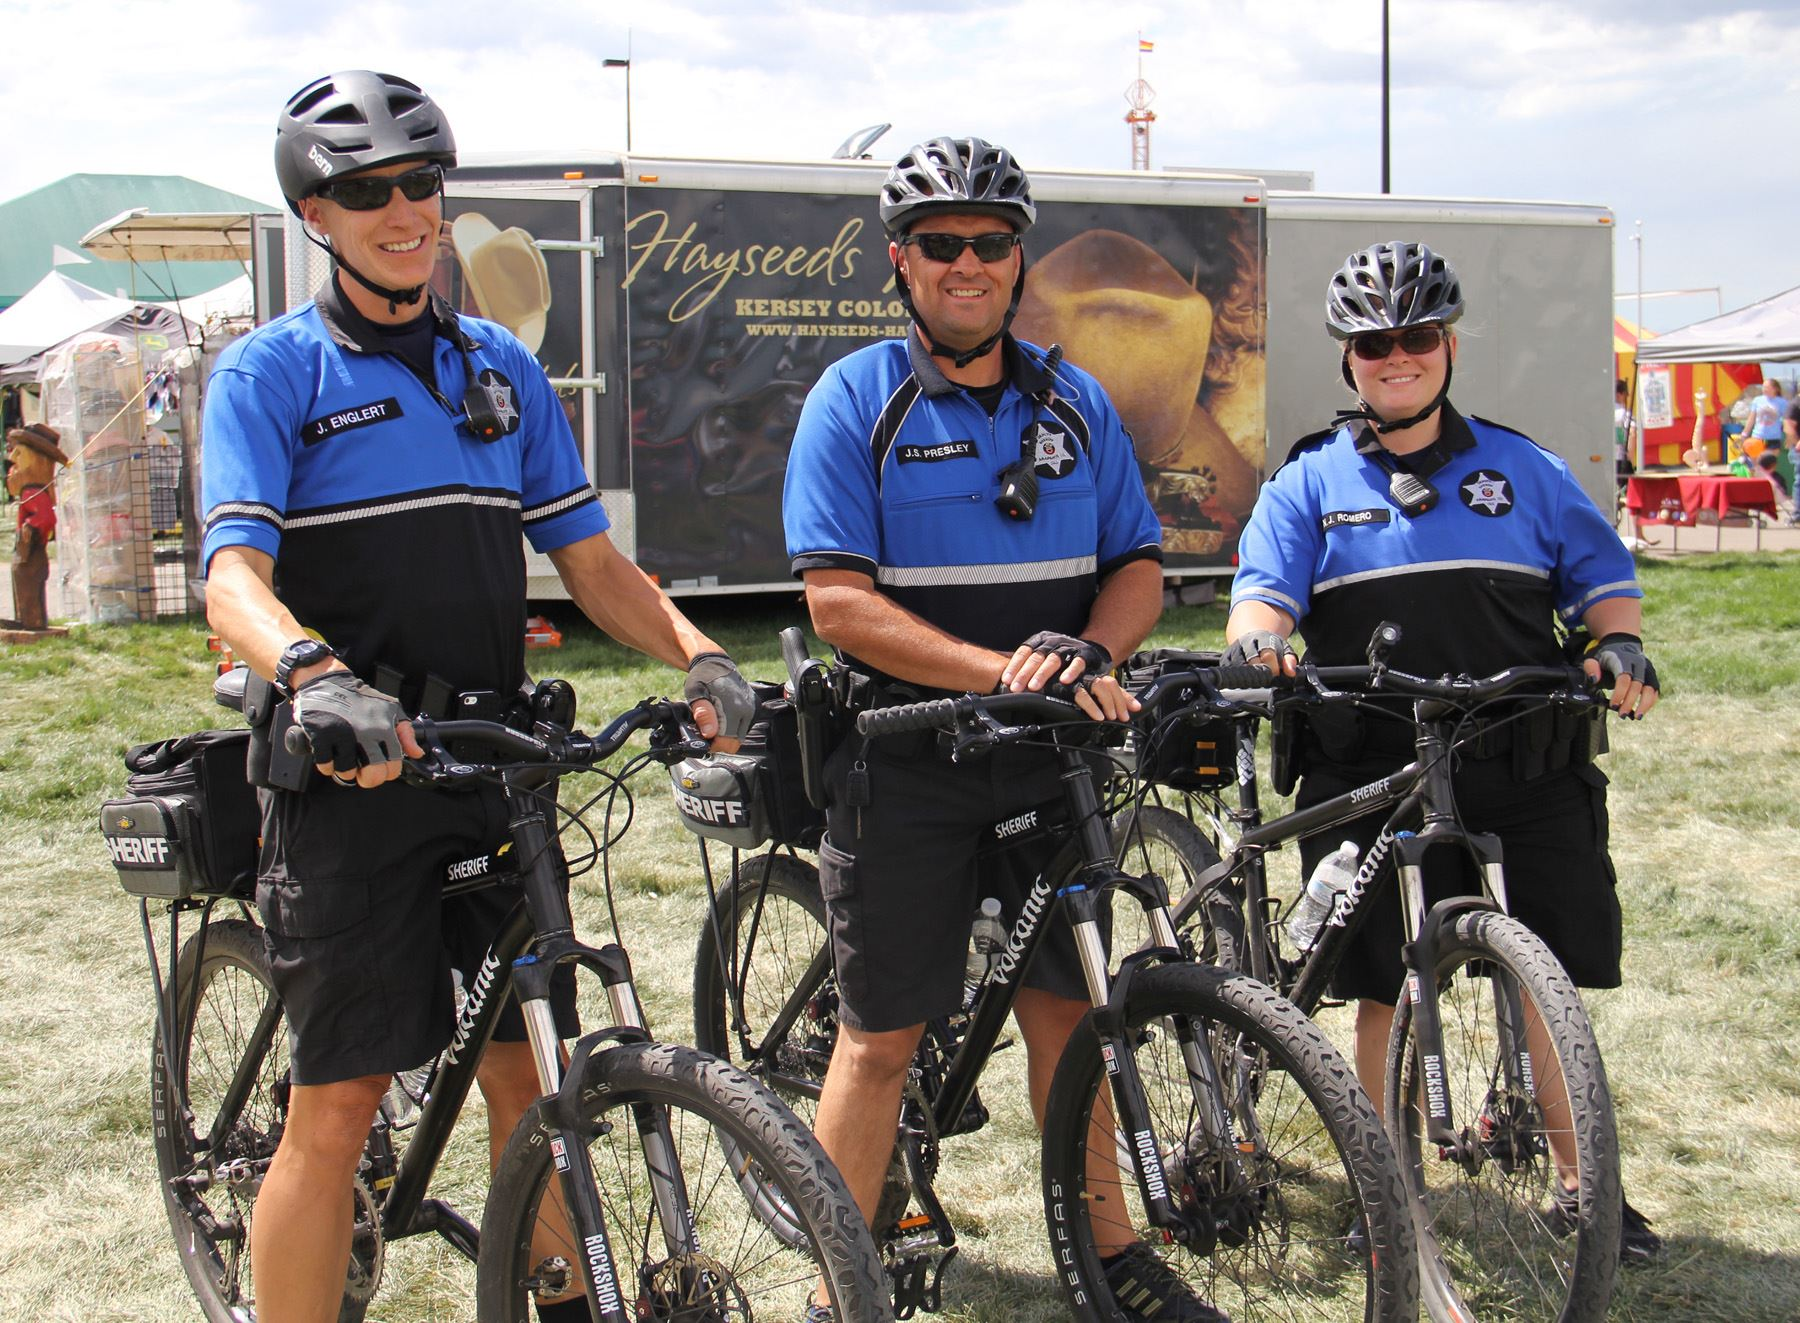 Three bicycle deputies standing with bikes